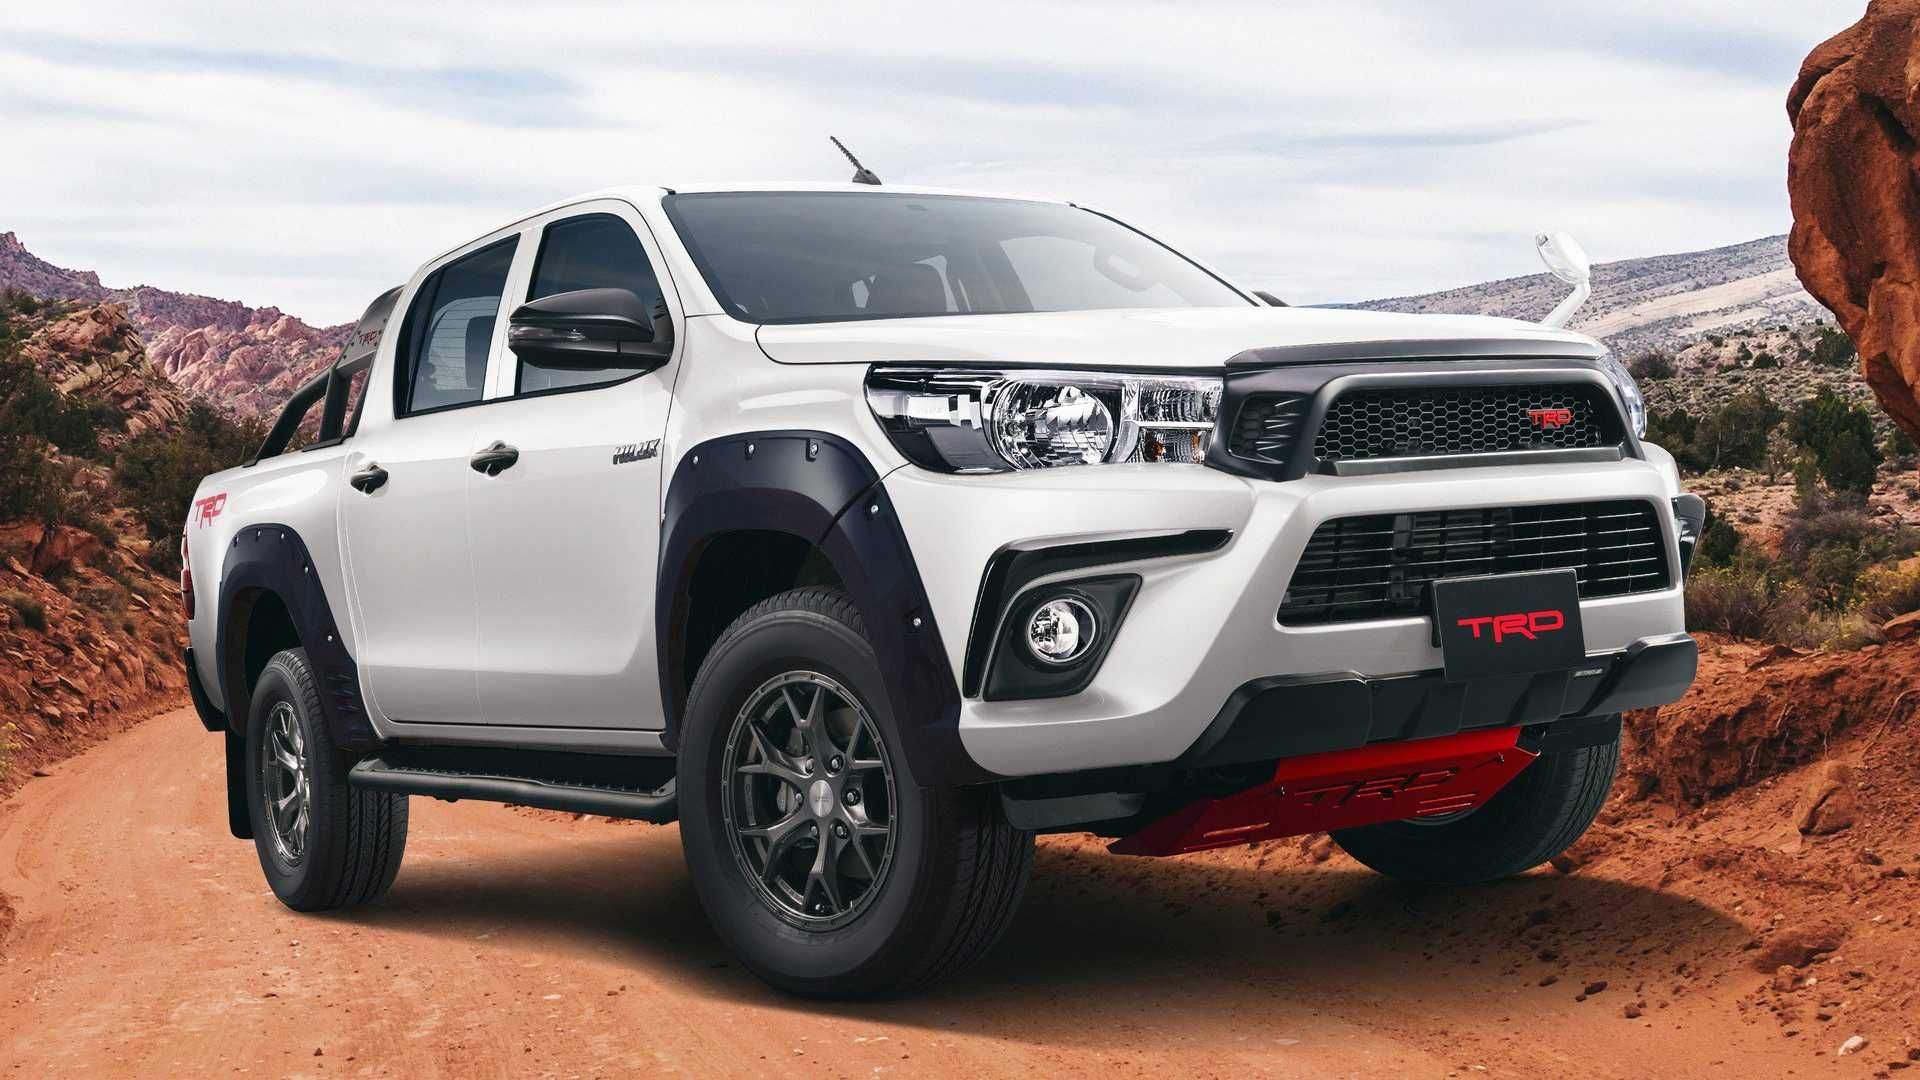 The Toyota Hilux Black Rally Edition Is A Trd Truck Done Right Toyota Hilux Toyota Trd